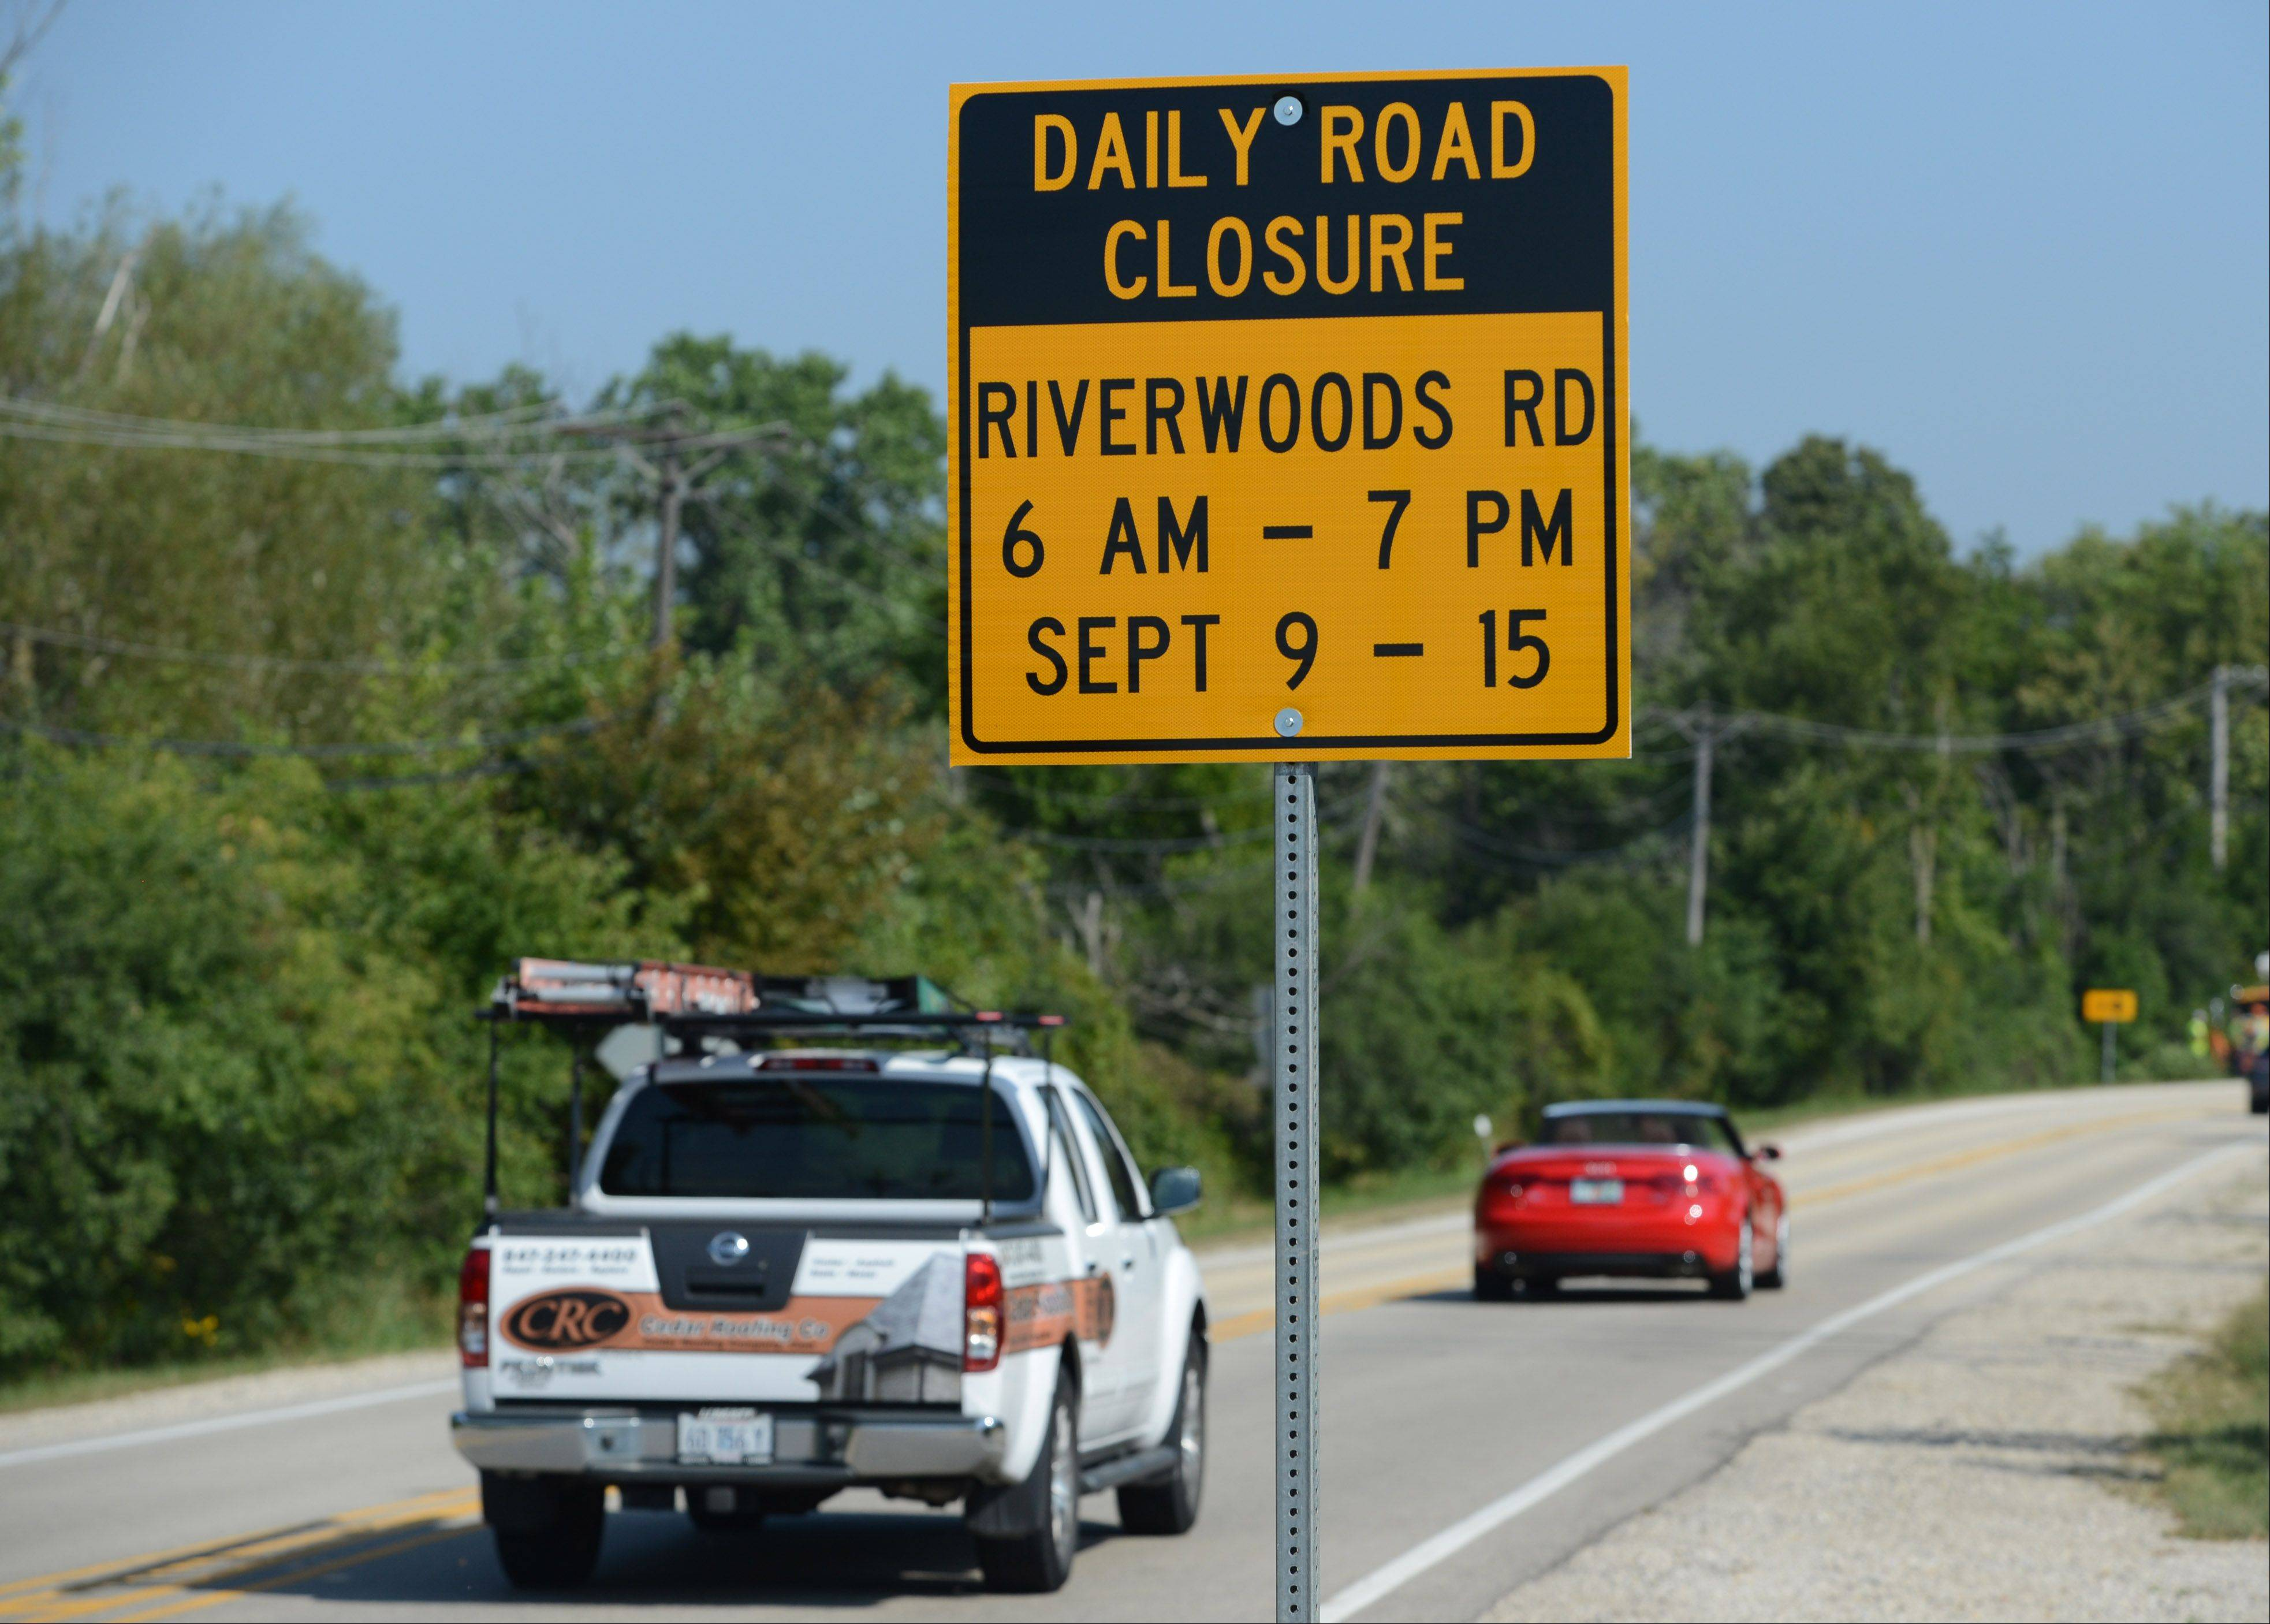 Paul Valade/pvalade@dailyherald.com � A temporary sign sits along Riverwoods Road just north of Everett Road near Mettawa alerting drivers of upcoming road closures. The BMW Championship tournament takes place at Conway Farms Golf Club in Lake Forest the week of Sept. 9-15.